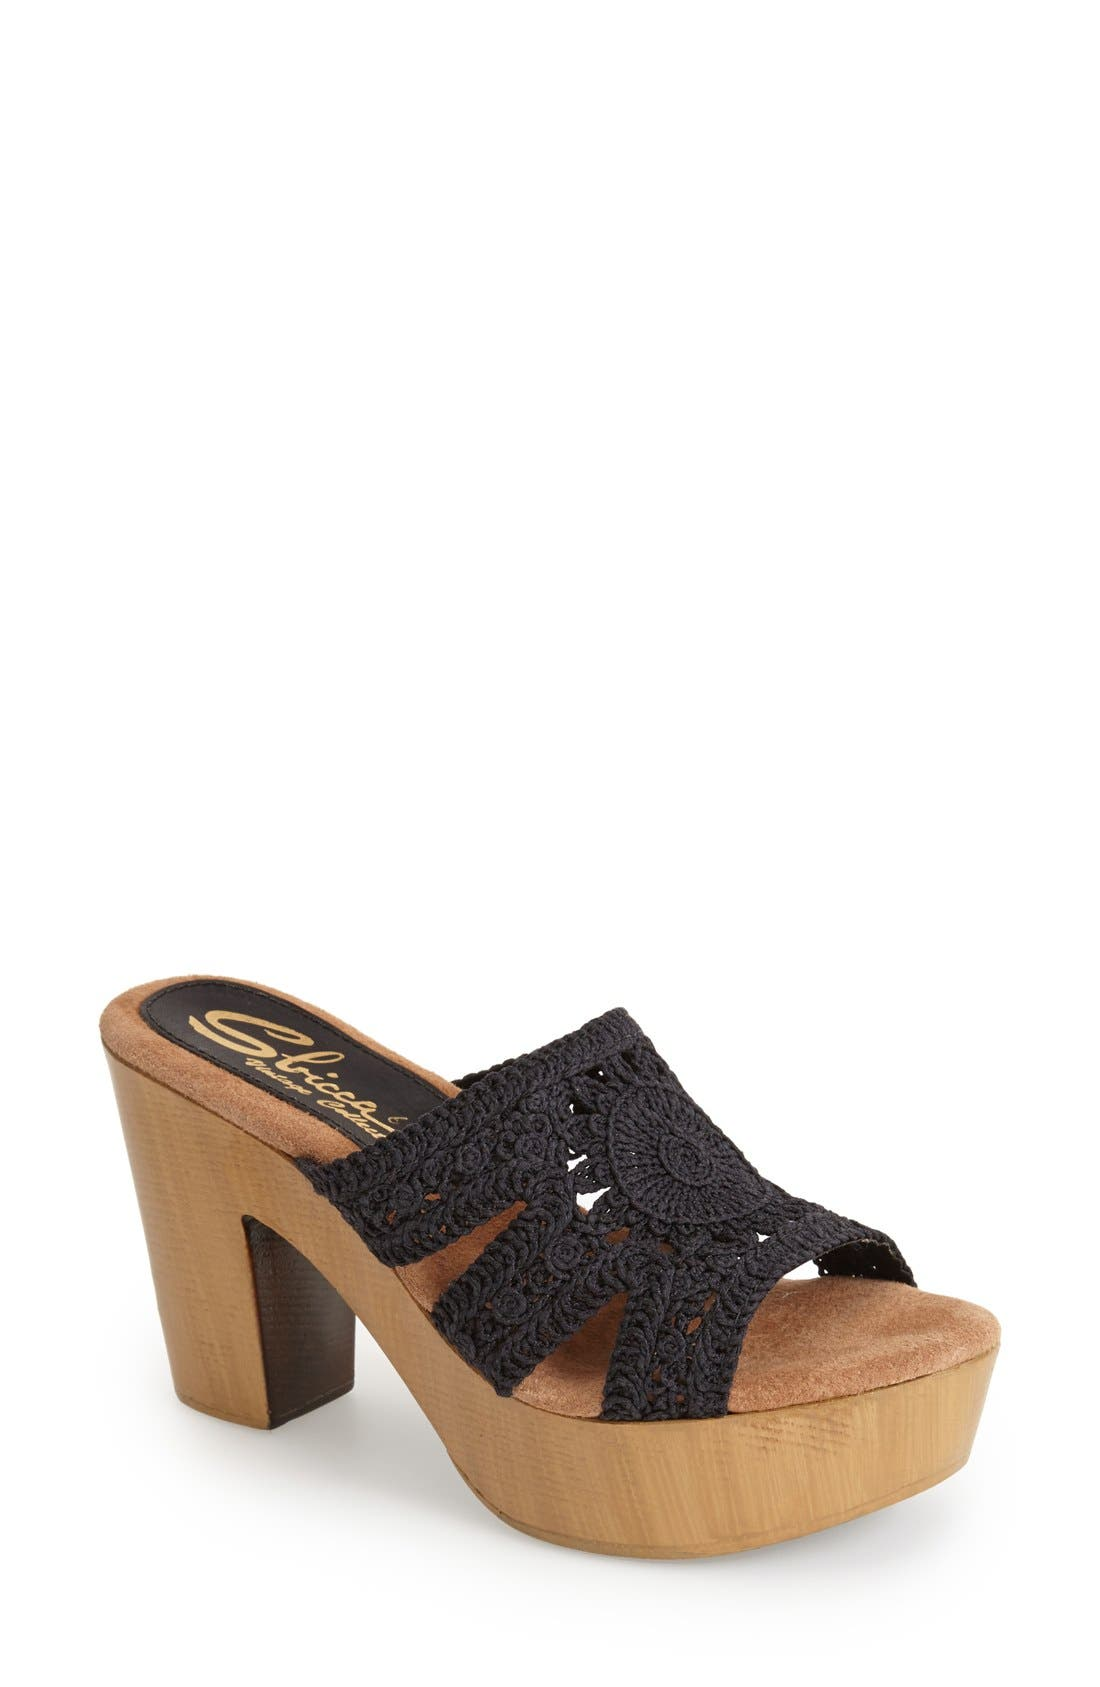 Alternate Image 1 Selected - Sbicca 'Sylvan' Platform Sandal (Women)